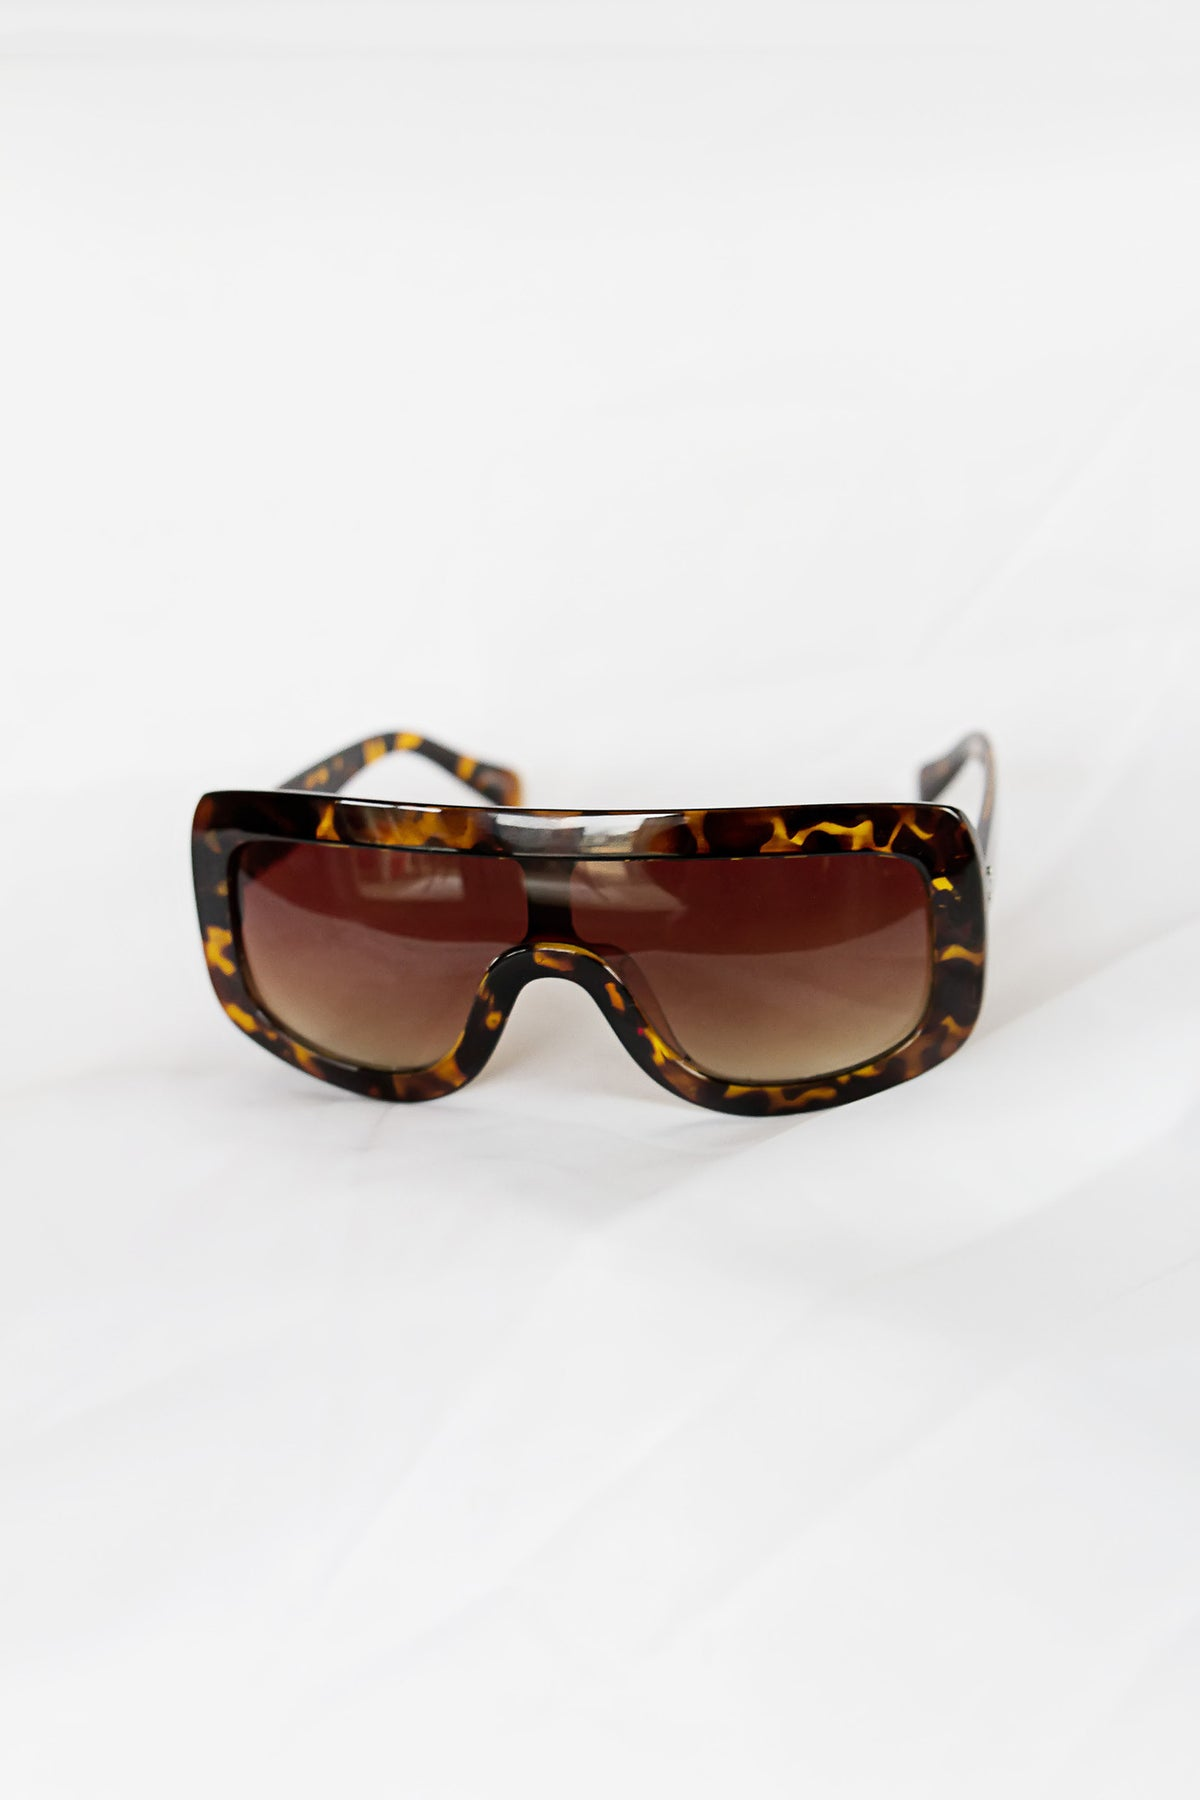 Celebrity Tortoise Sunglasses - House of W